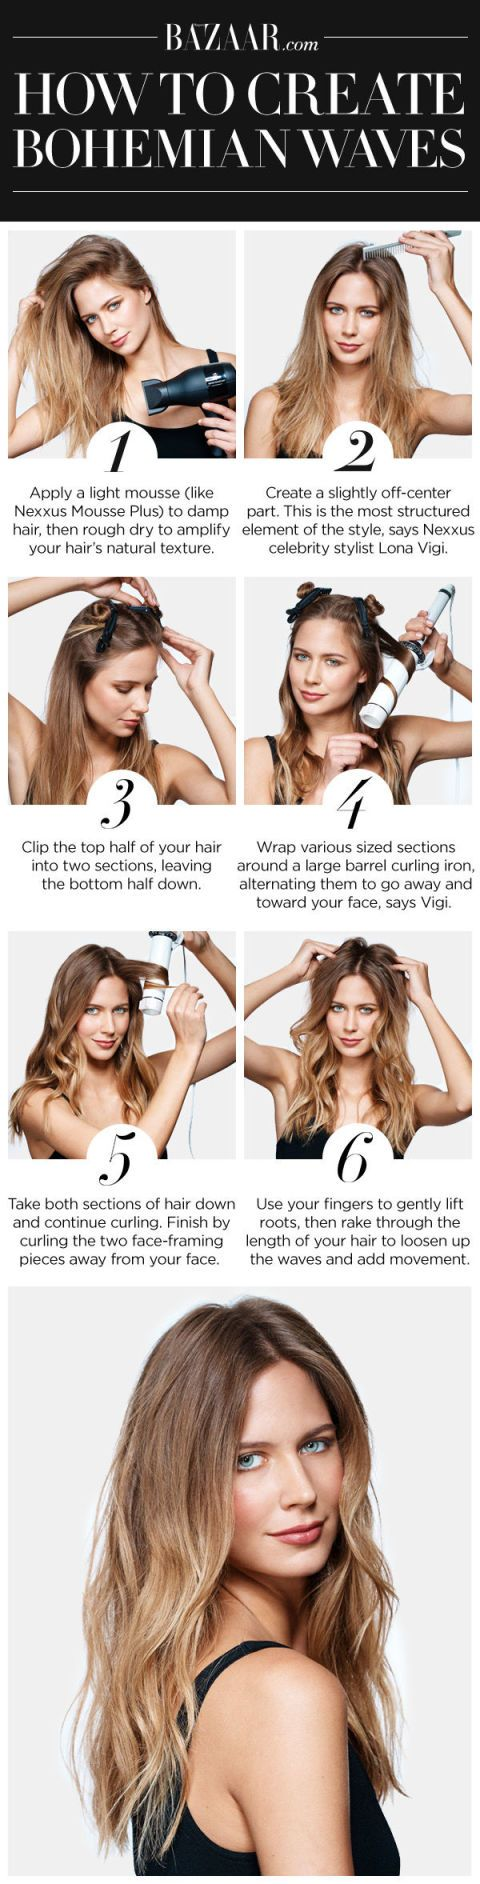 Wavy Hair Tutorial -How to Get Boho Wavy Hair